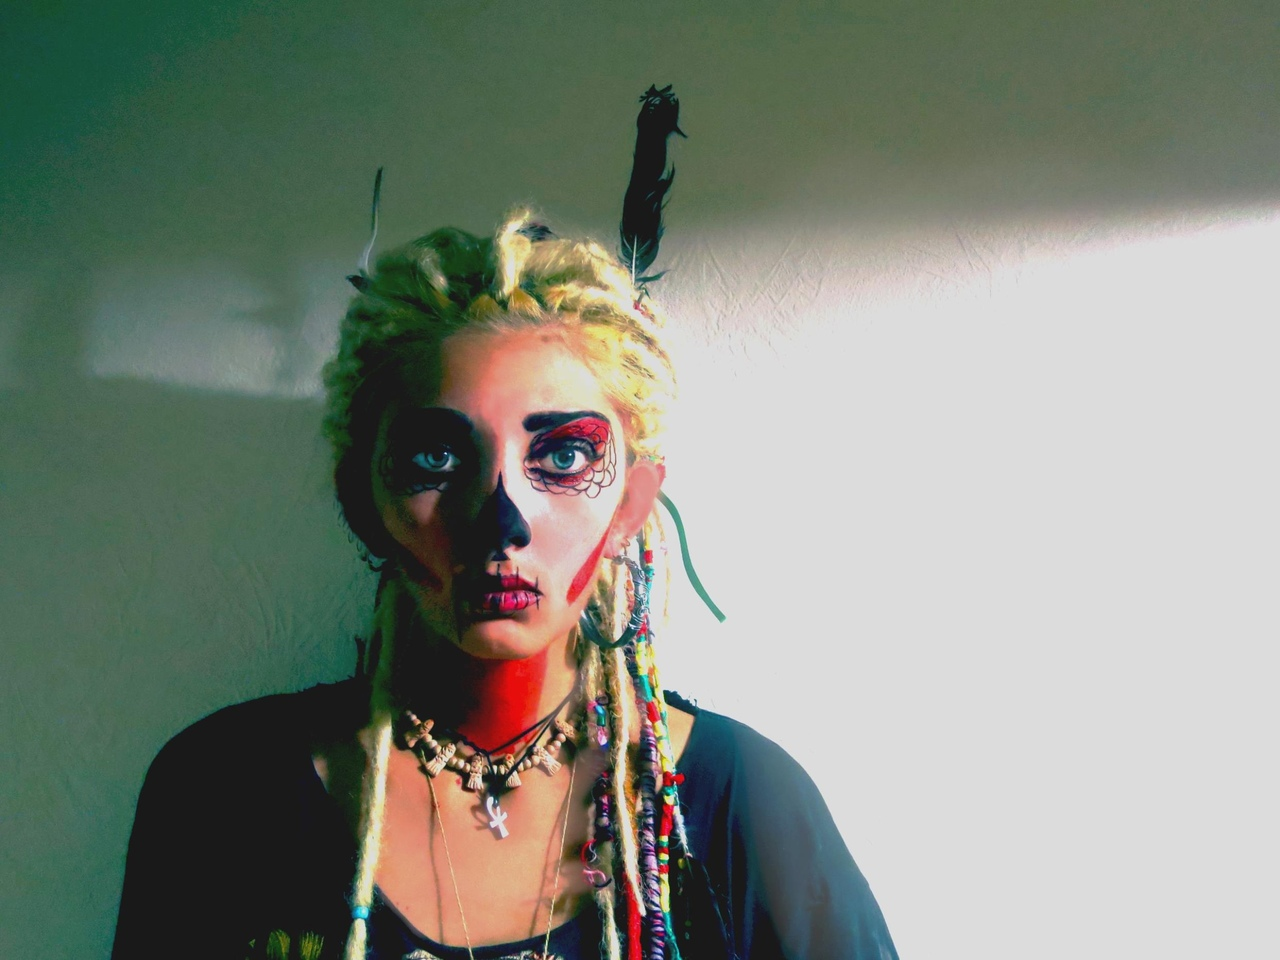 Women Looking At Viewer Natural Light Sugar Skull Dyed Hair Dreadlocks Makeup Feathers Necklace Blon 1280x960